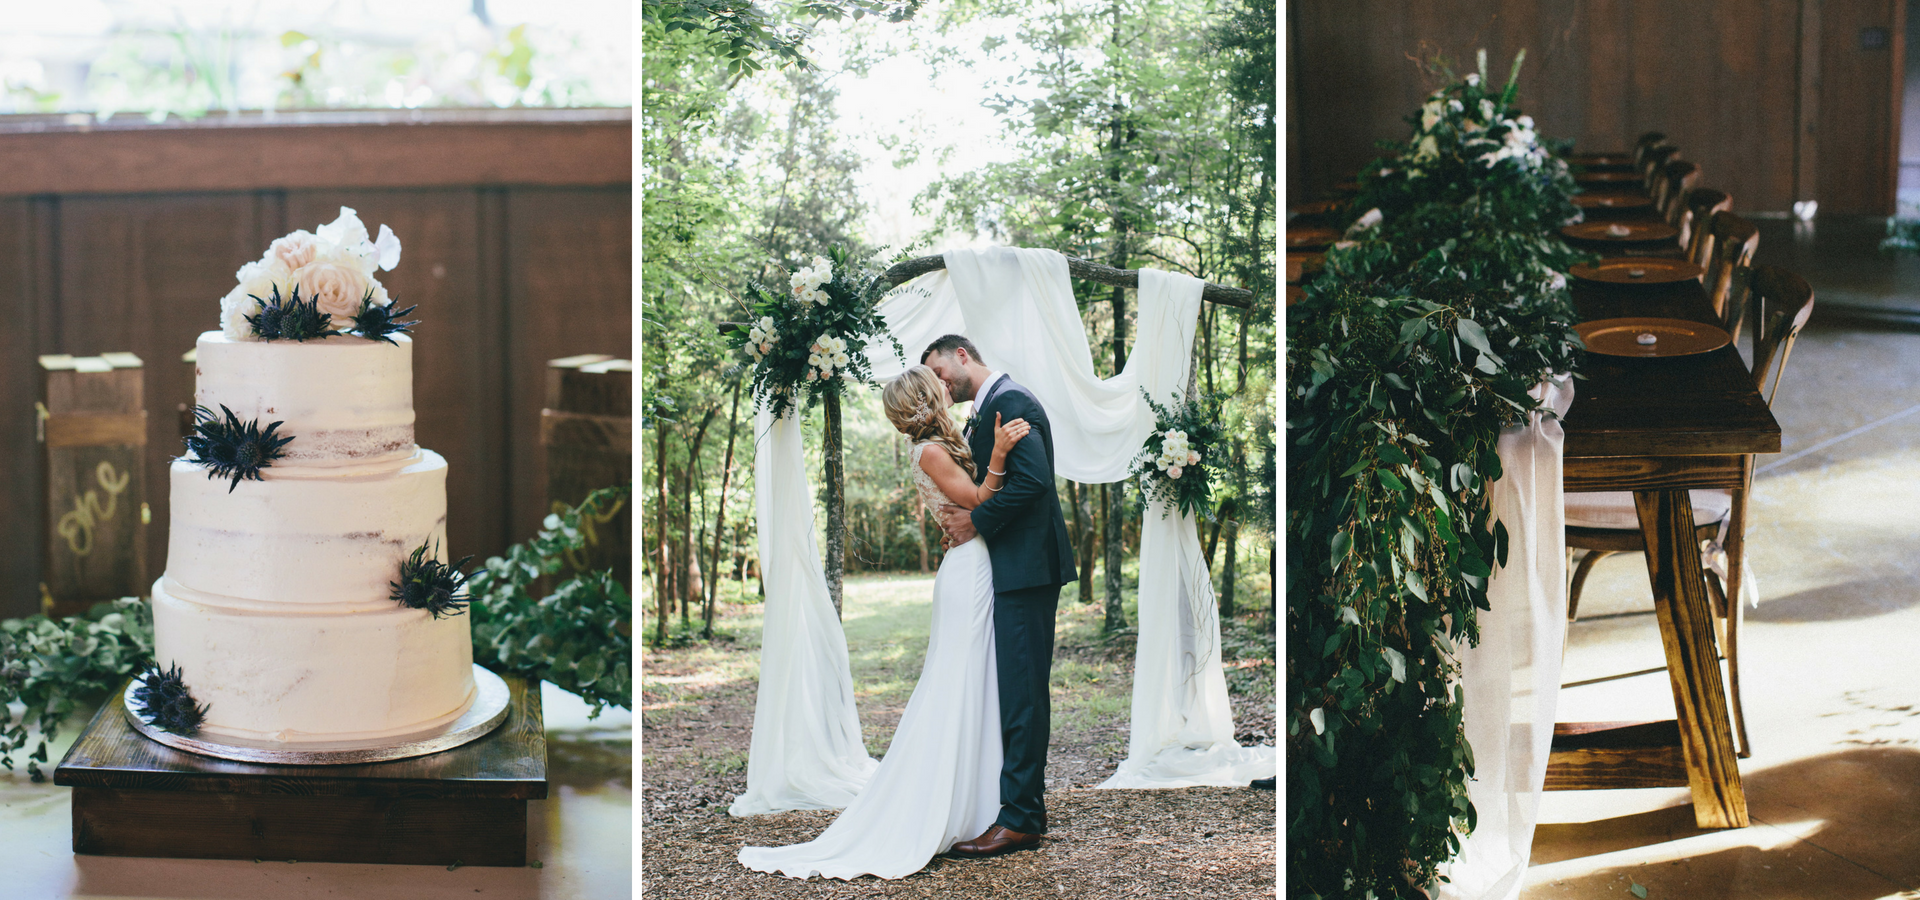 North Carolina Wedding in the Woods